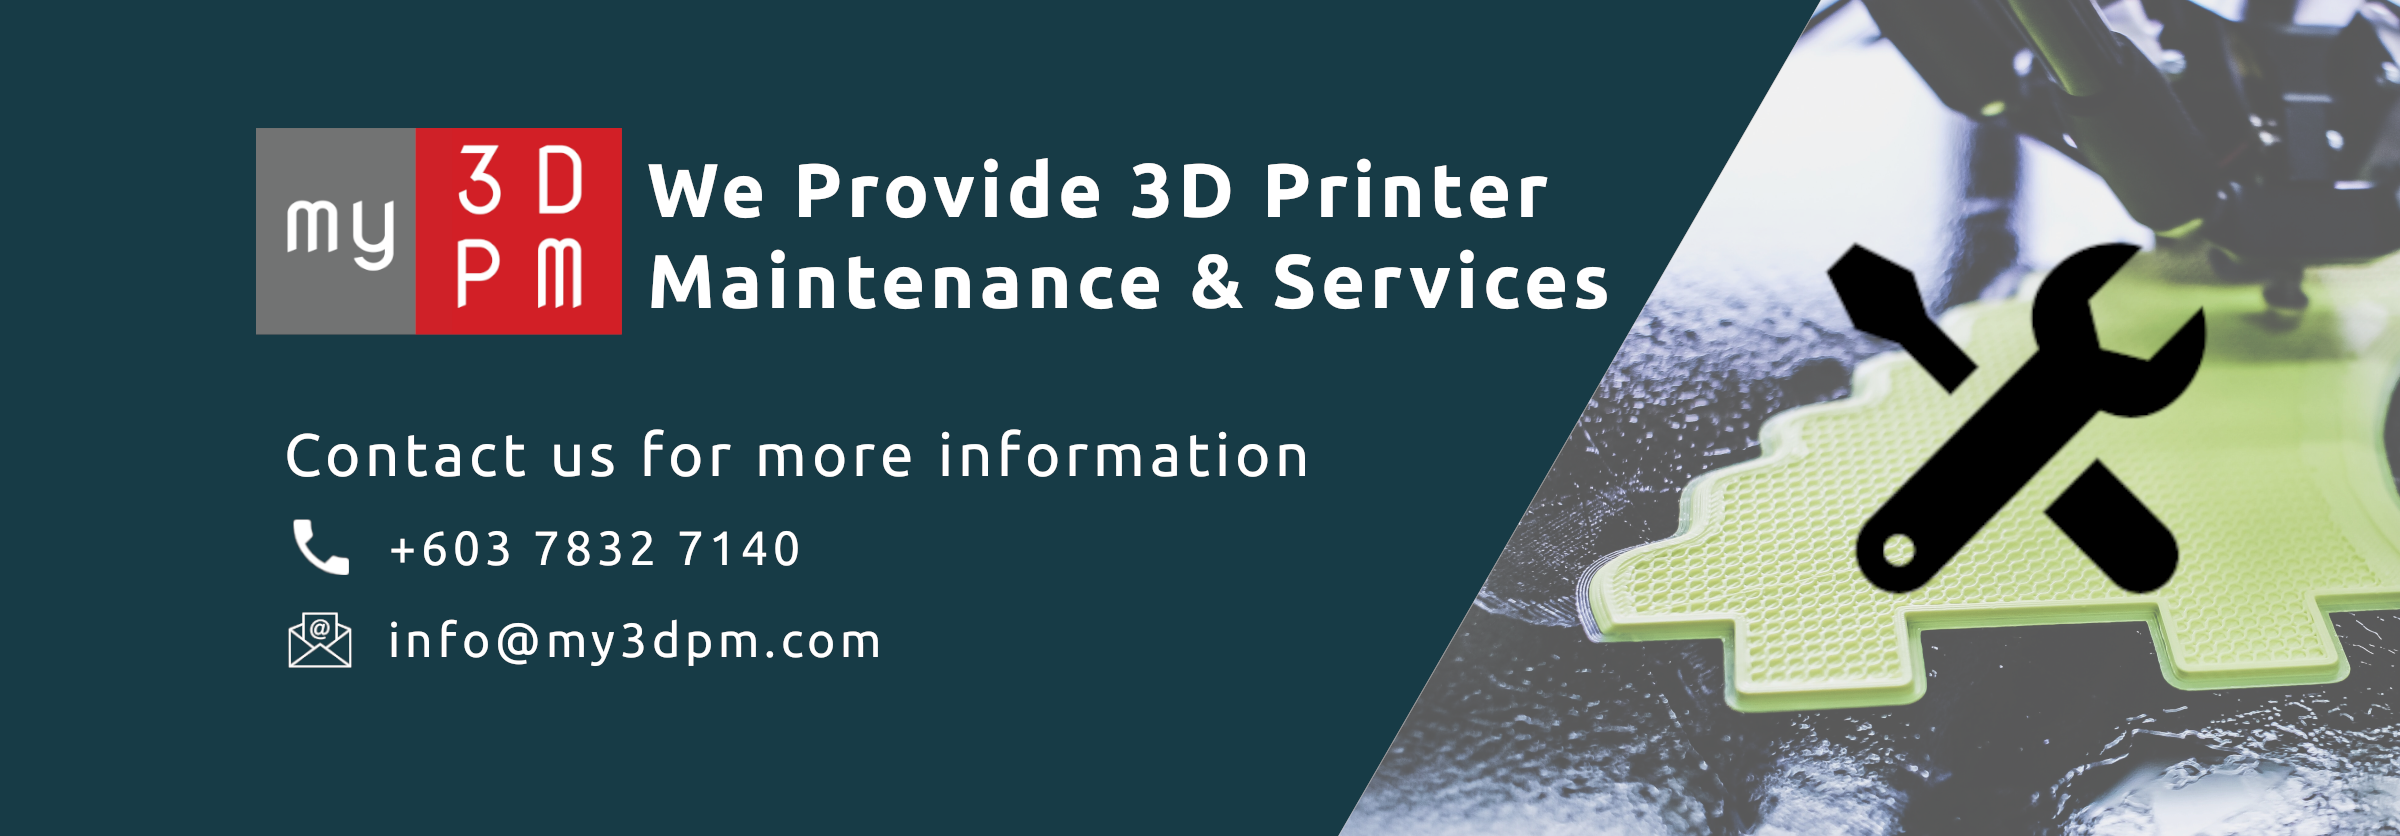 Printer Maintenance and services